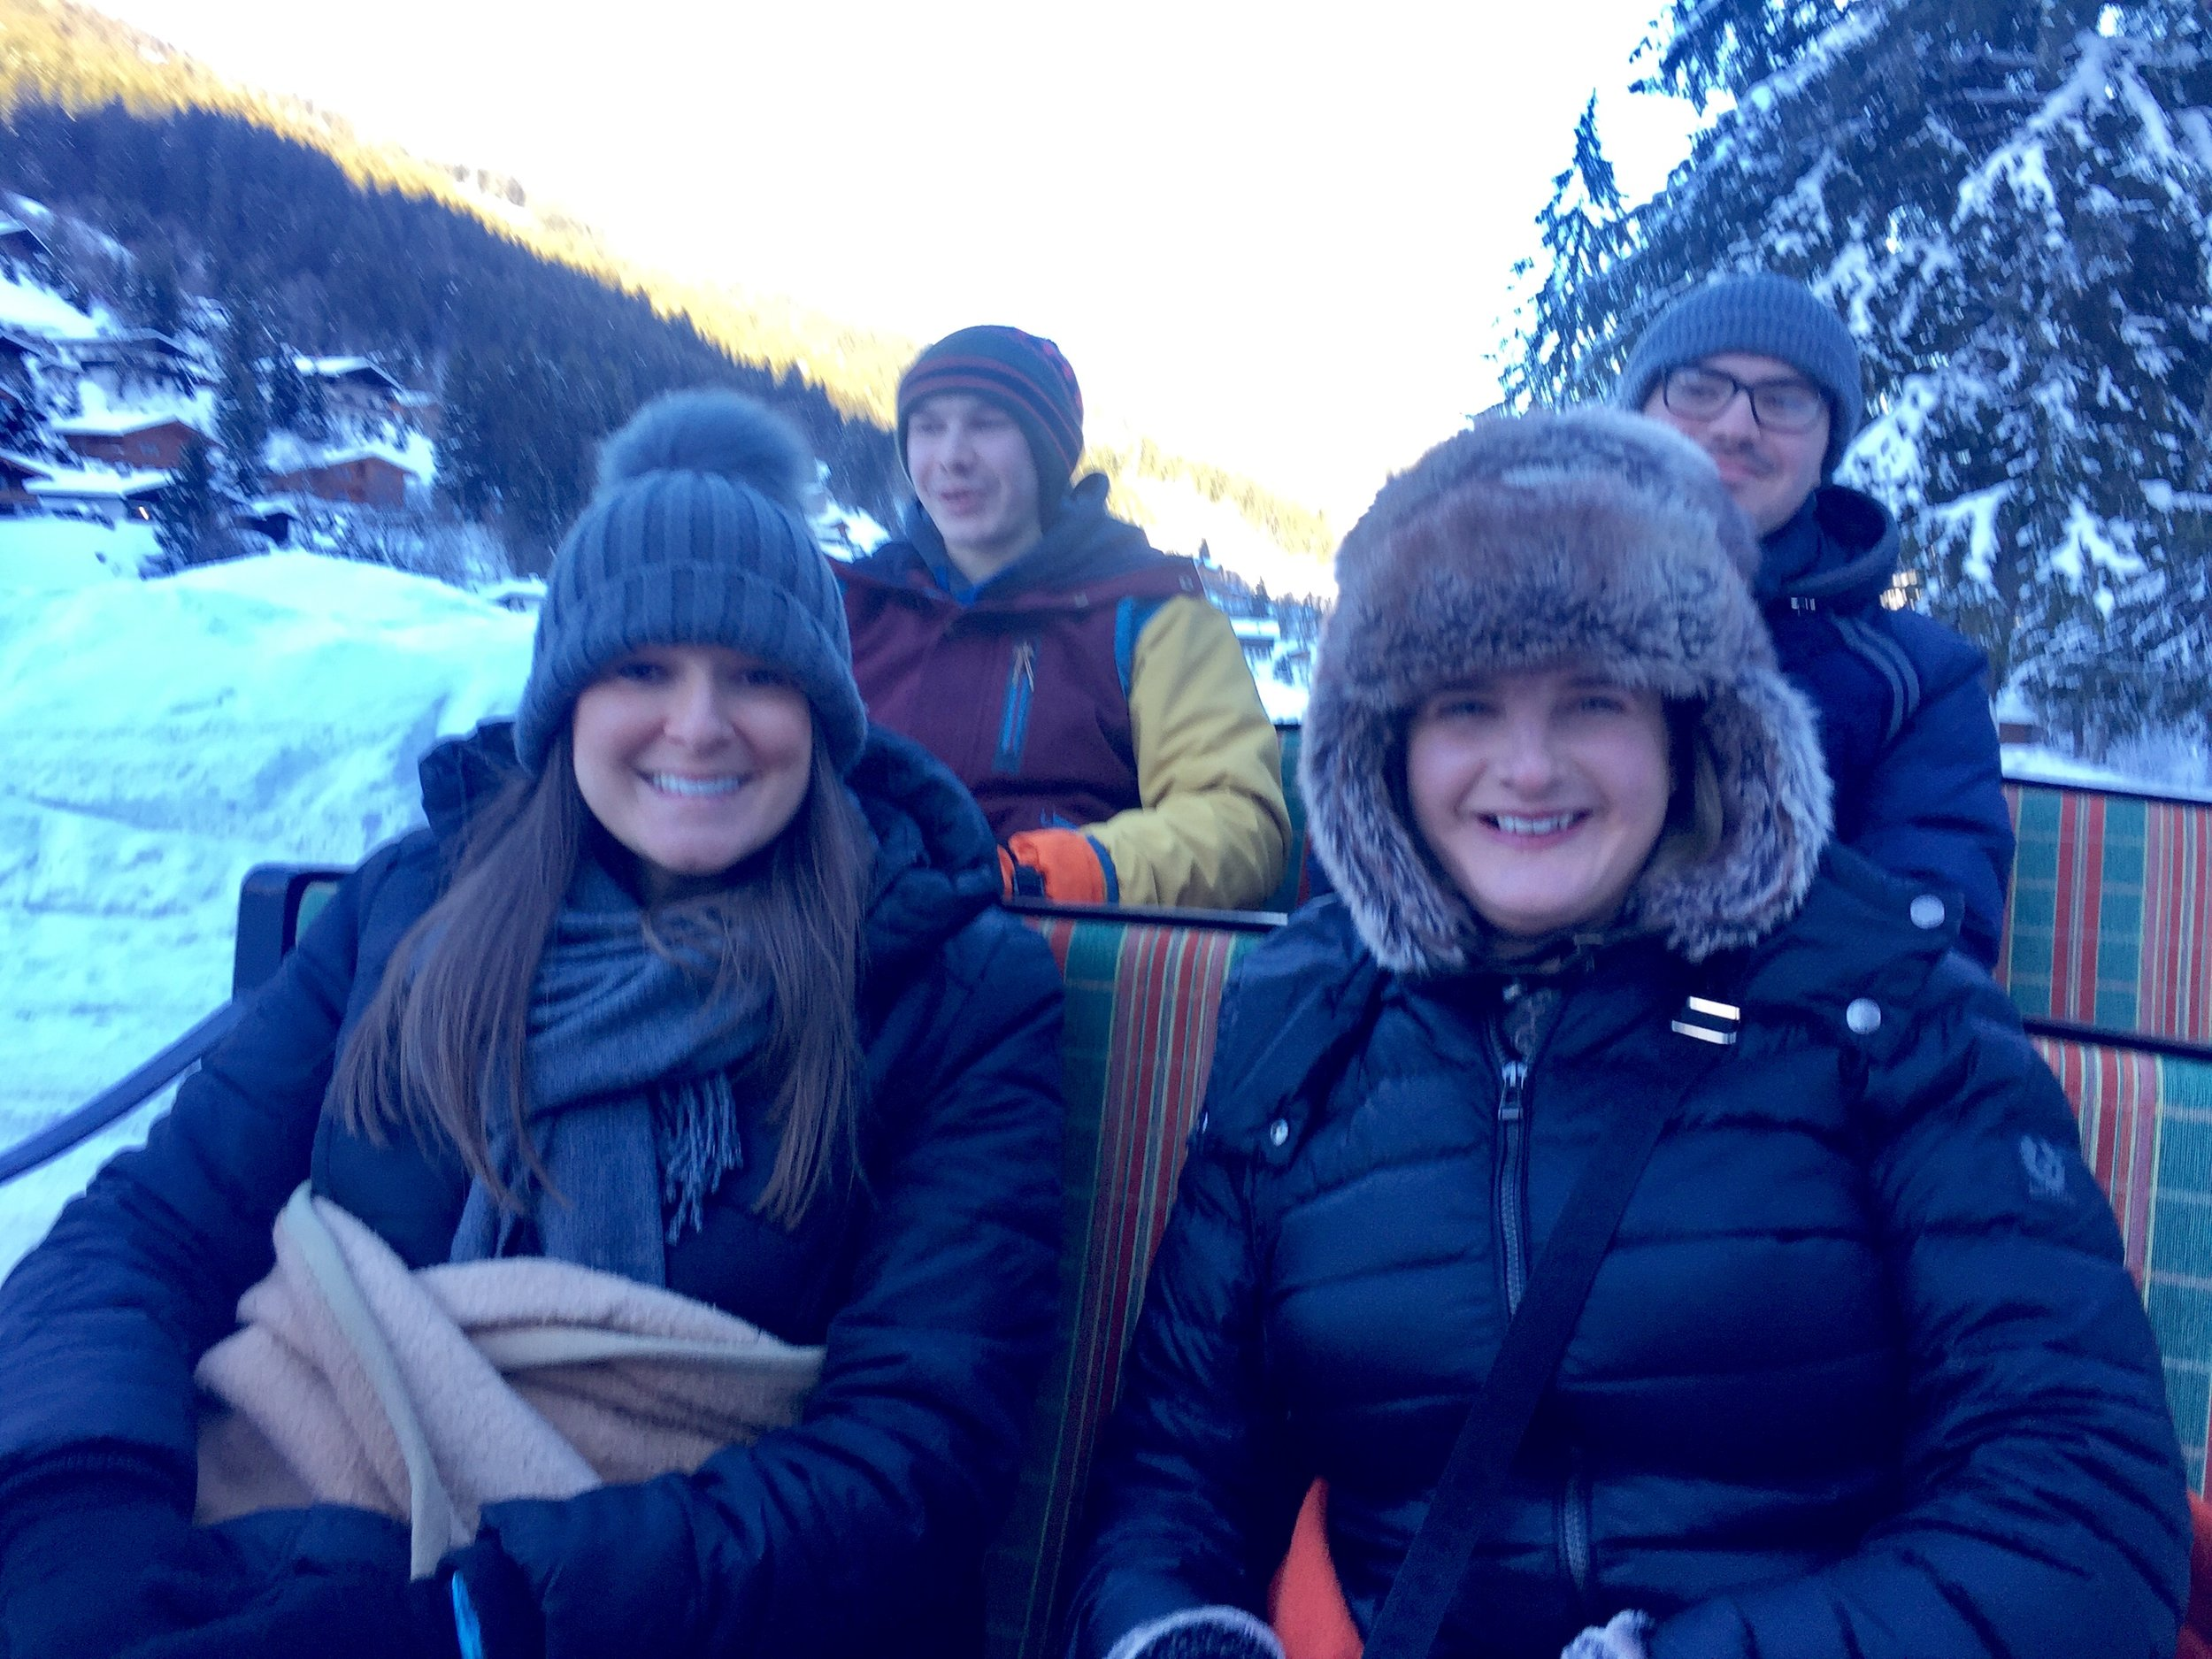 A horse drawn sleigh ride in the mountains was probably the highlight of my week. I would wholeheartedly recommend a trip to Baumzipfelweg and Golden gate bridge (Hinterglemm, Austria.if you happen to be passing)